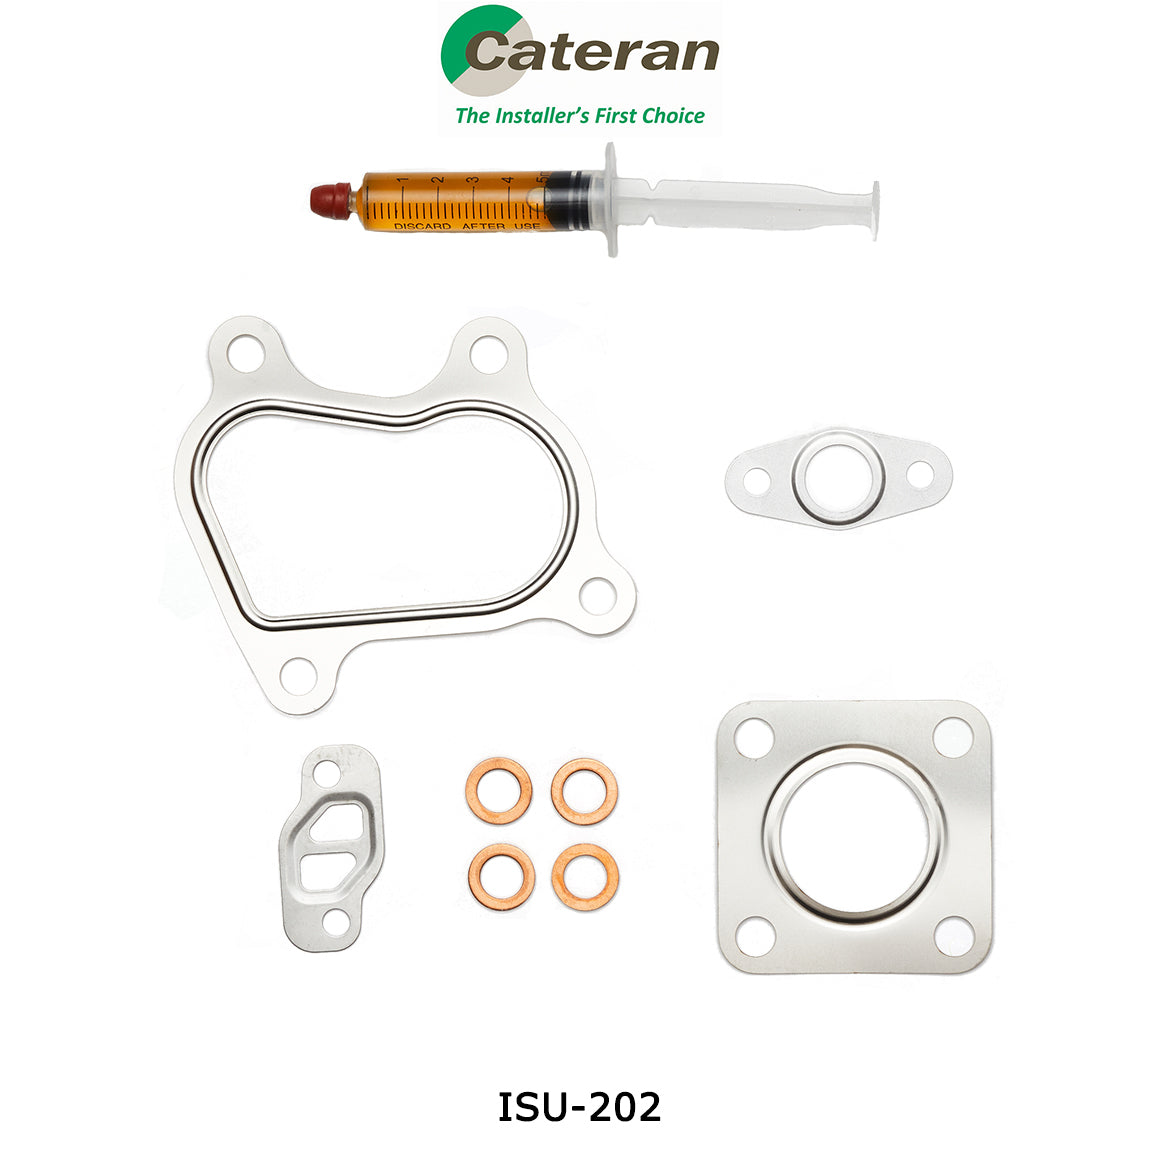 HOLDEN RODEO 2.8L - 97/01 GASKET KIT